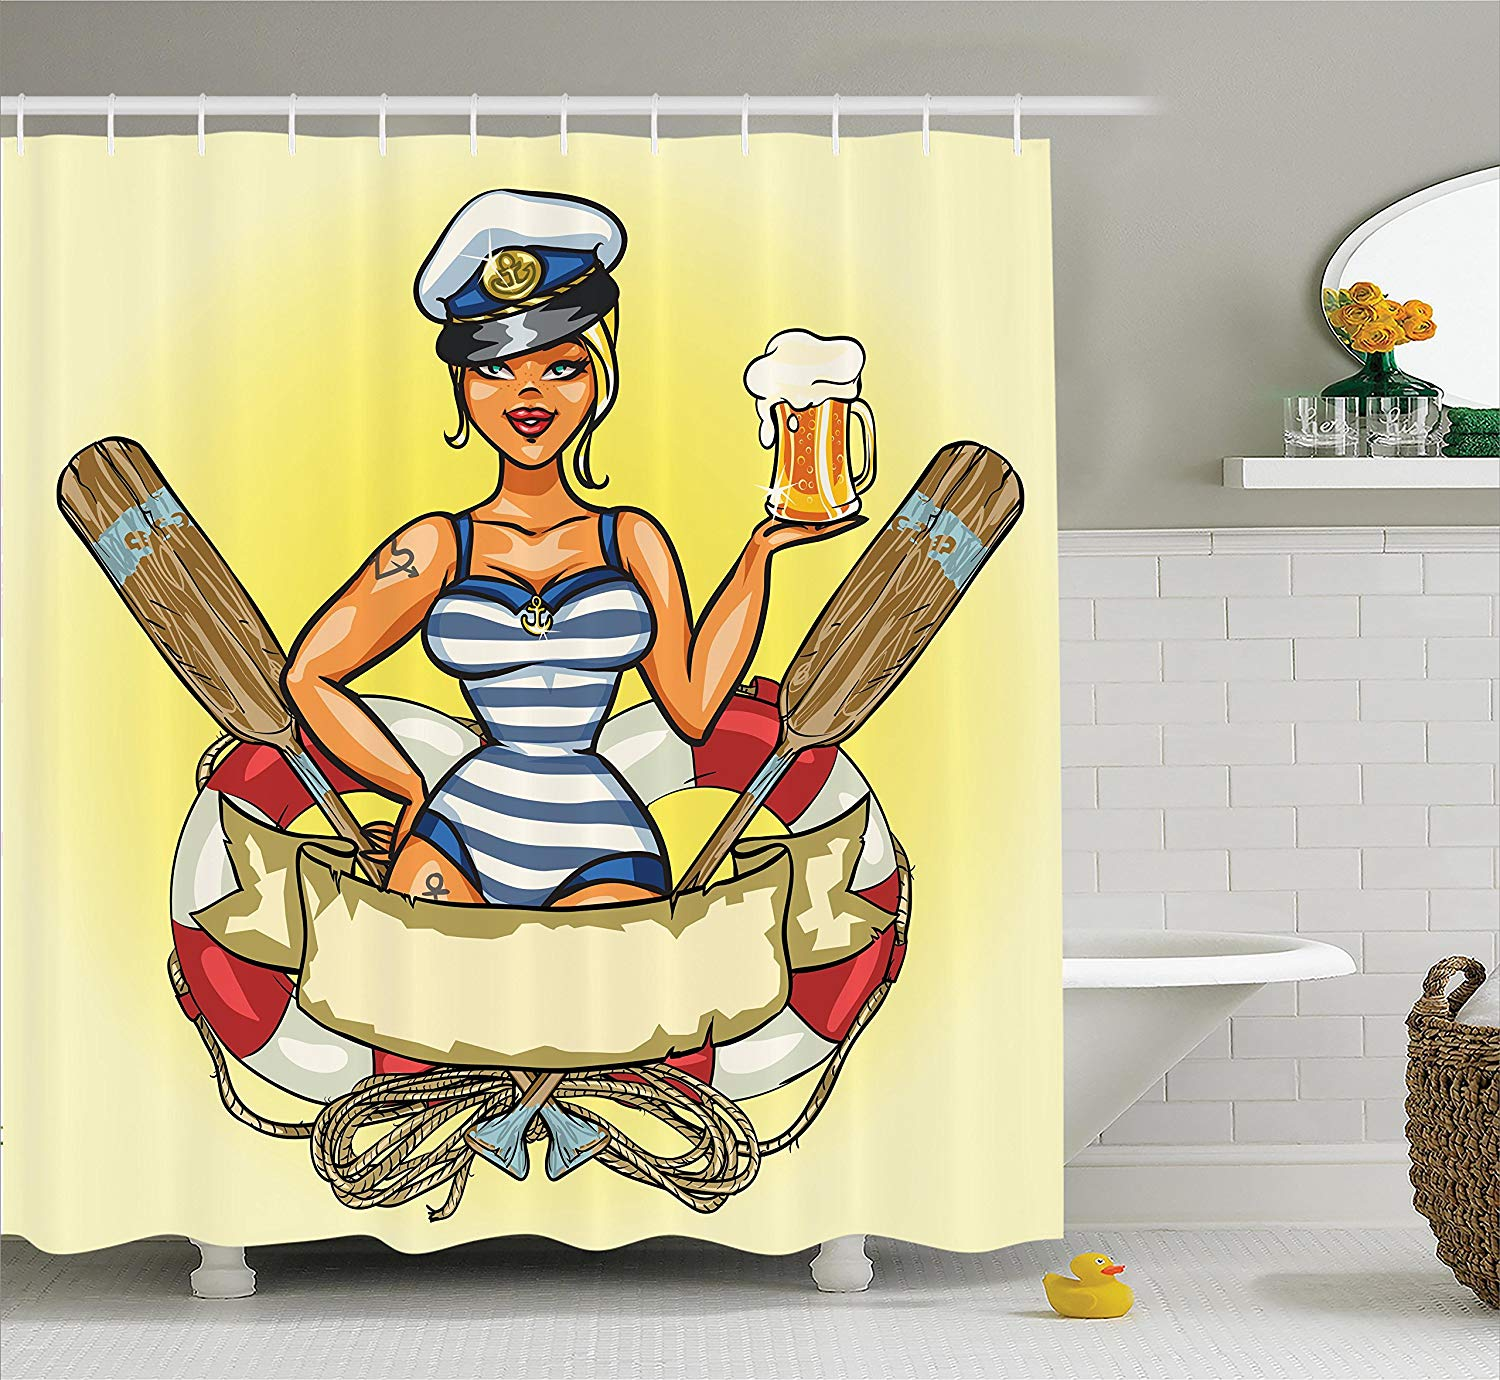 Girly Decor Shower Curtain Pin Up Sexy Sailor Girl In Lifebuoy With Captain Hat And -2012